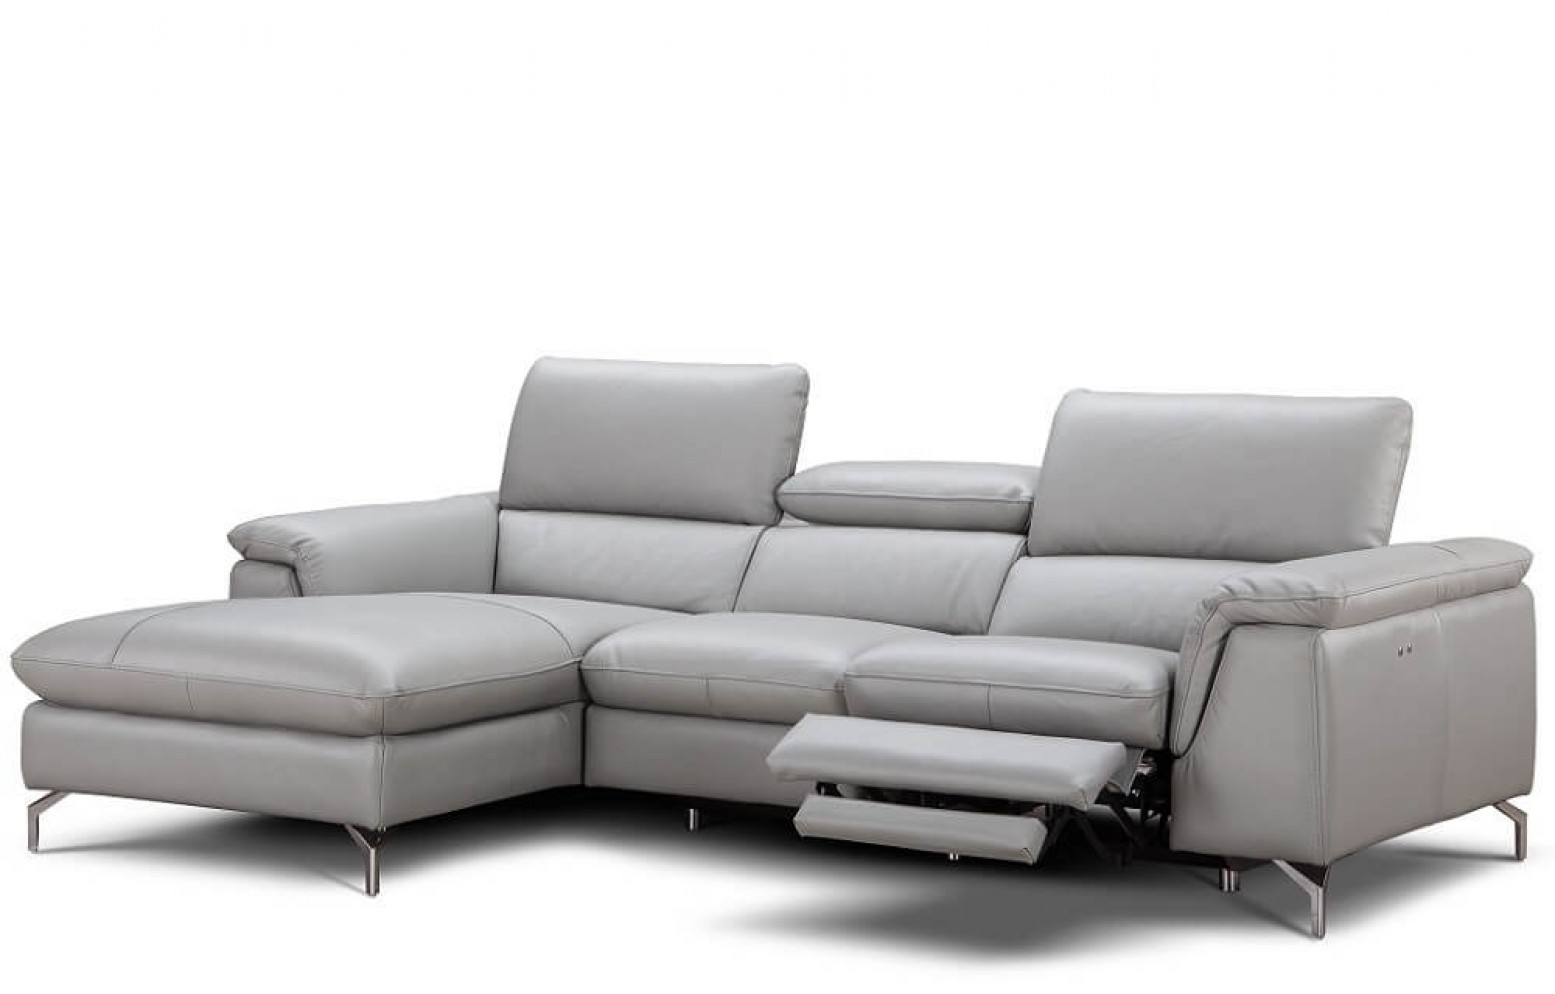 Picture of: Serena Premium Reclining Leather Sectional Light Grey By J M Furniture Sohomod Com